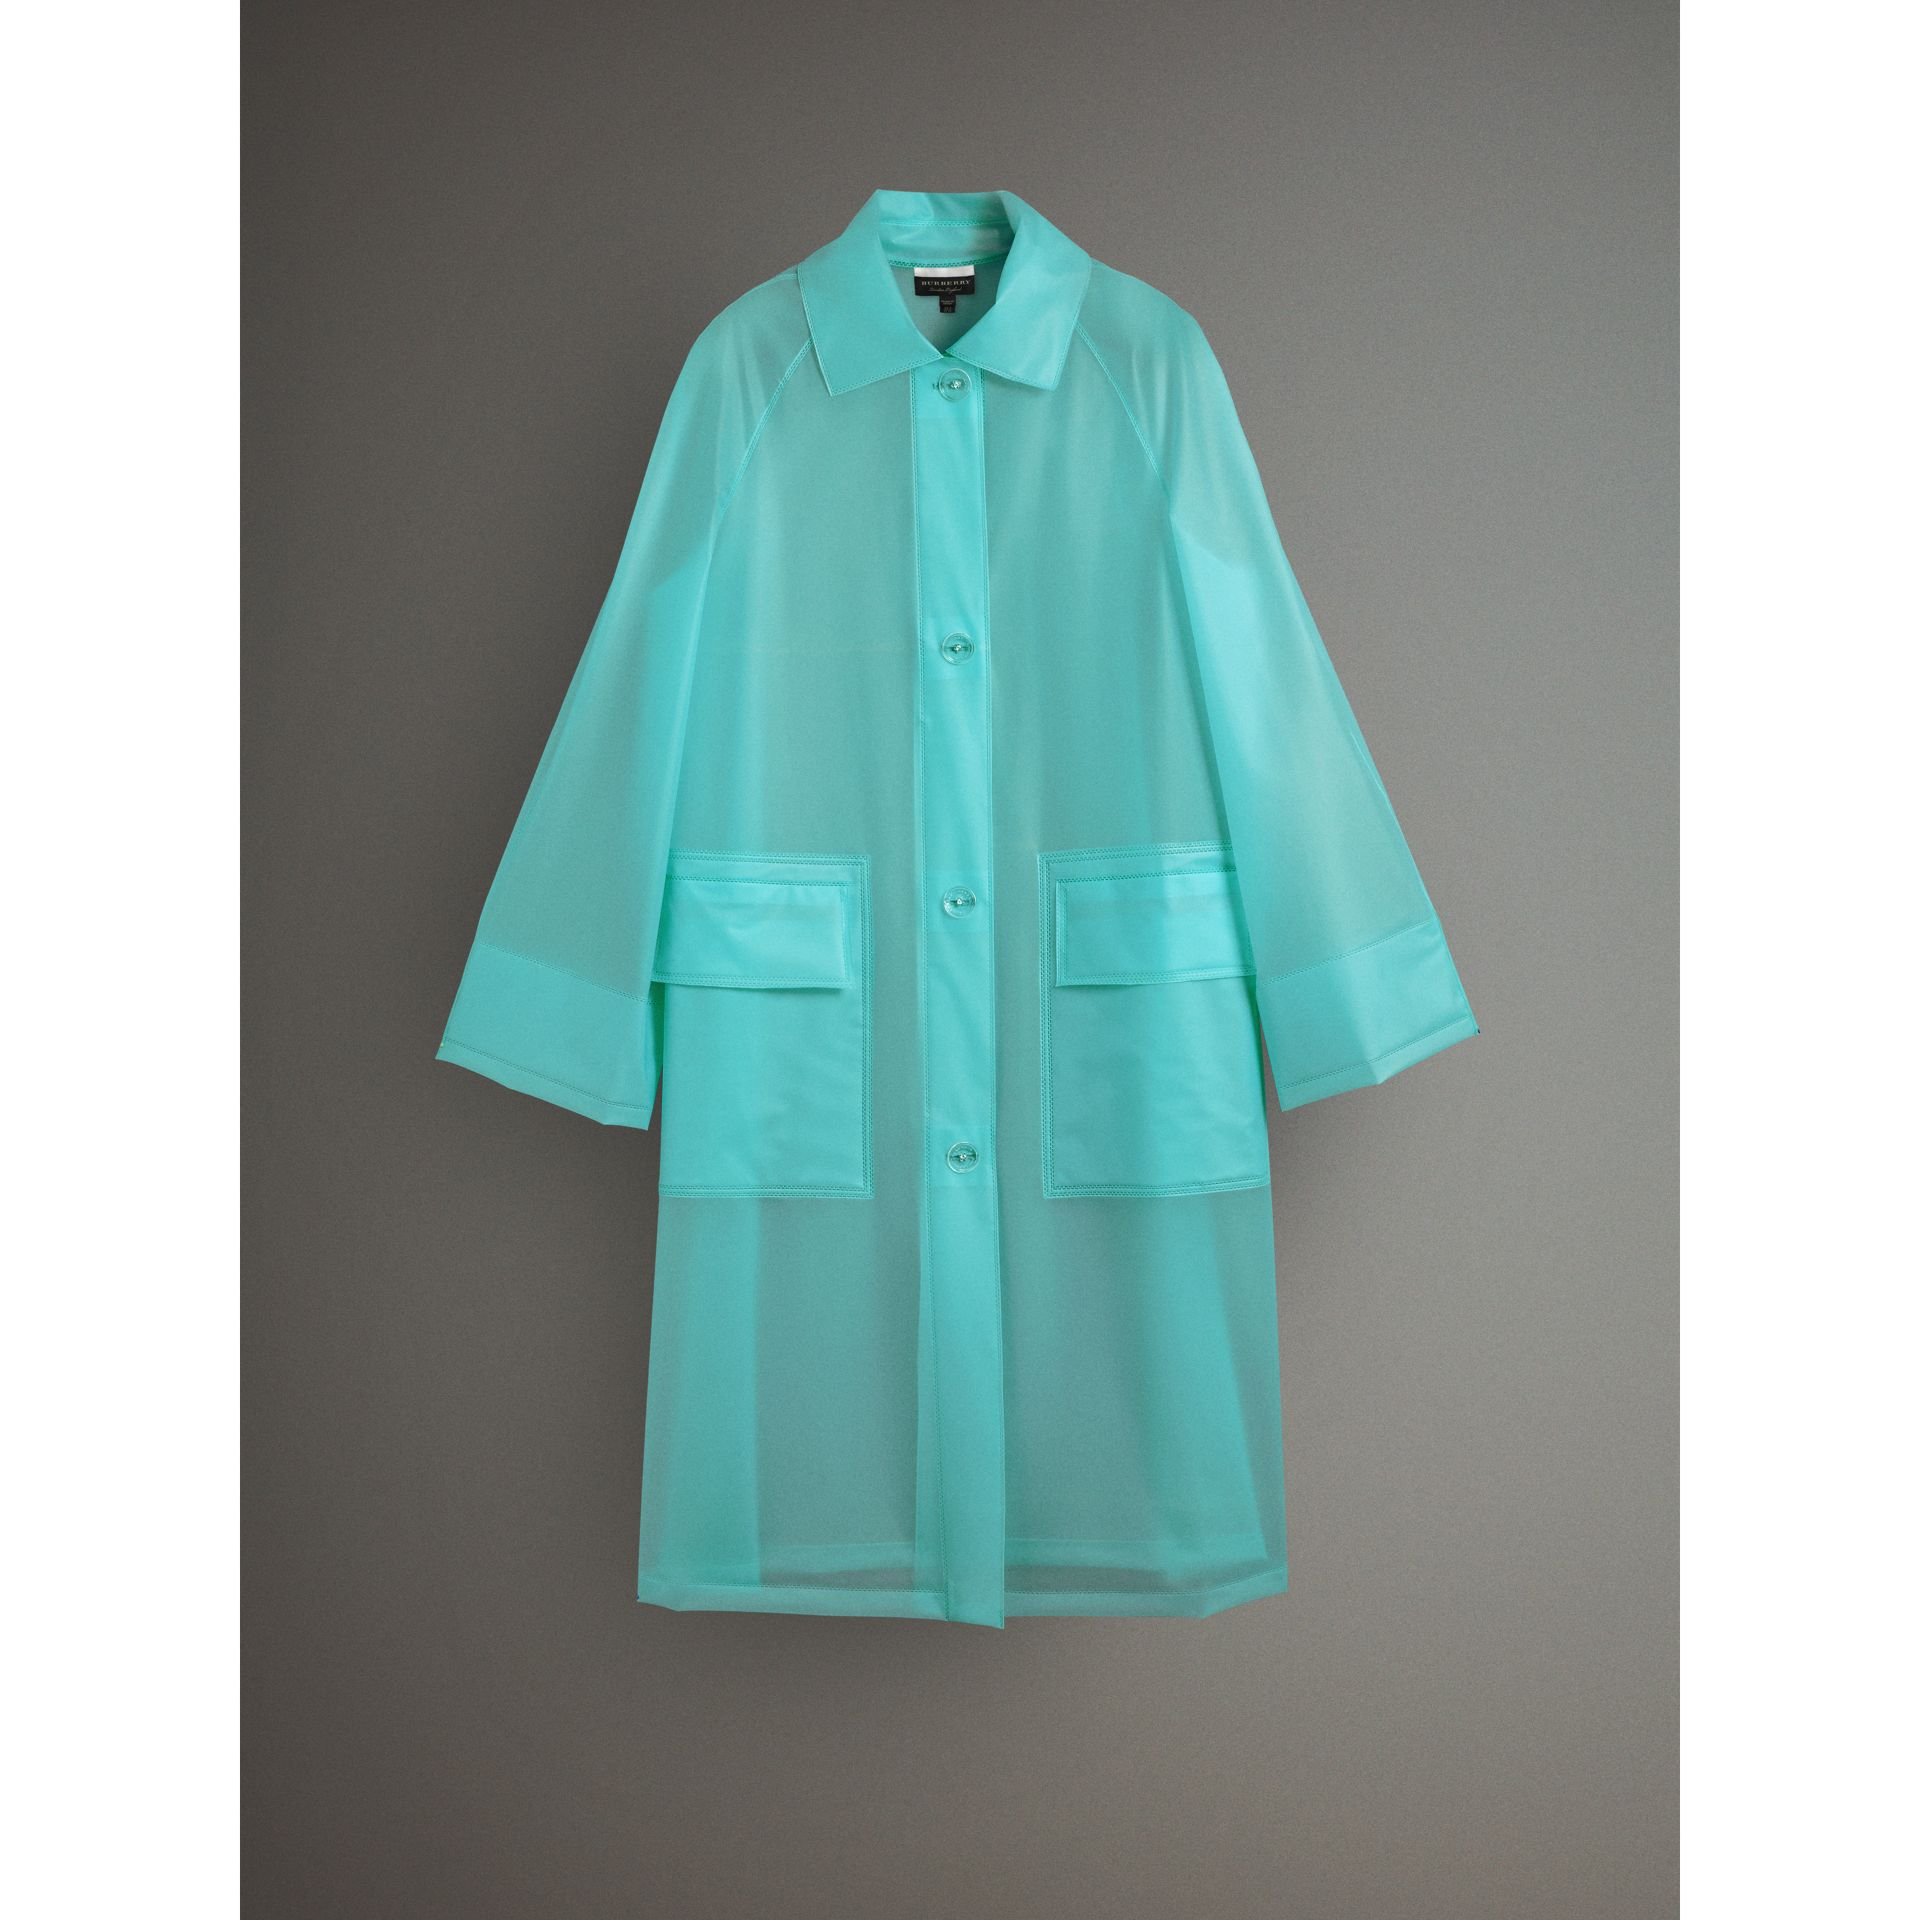 Soft-touch Plastic Car Coat in Turquoise - Women | Burberry Australia - gallery image 4